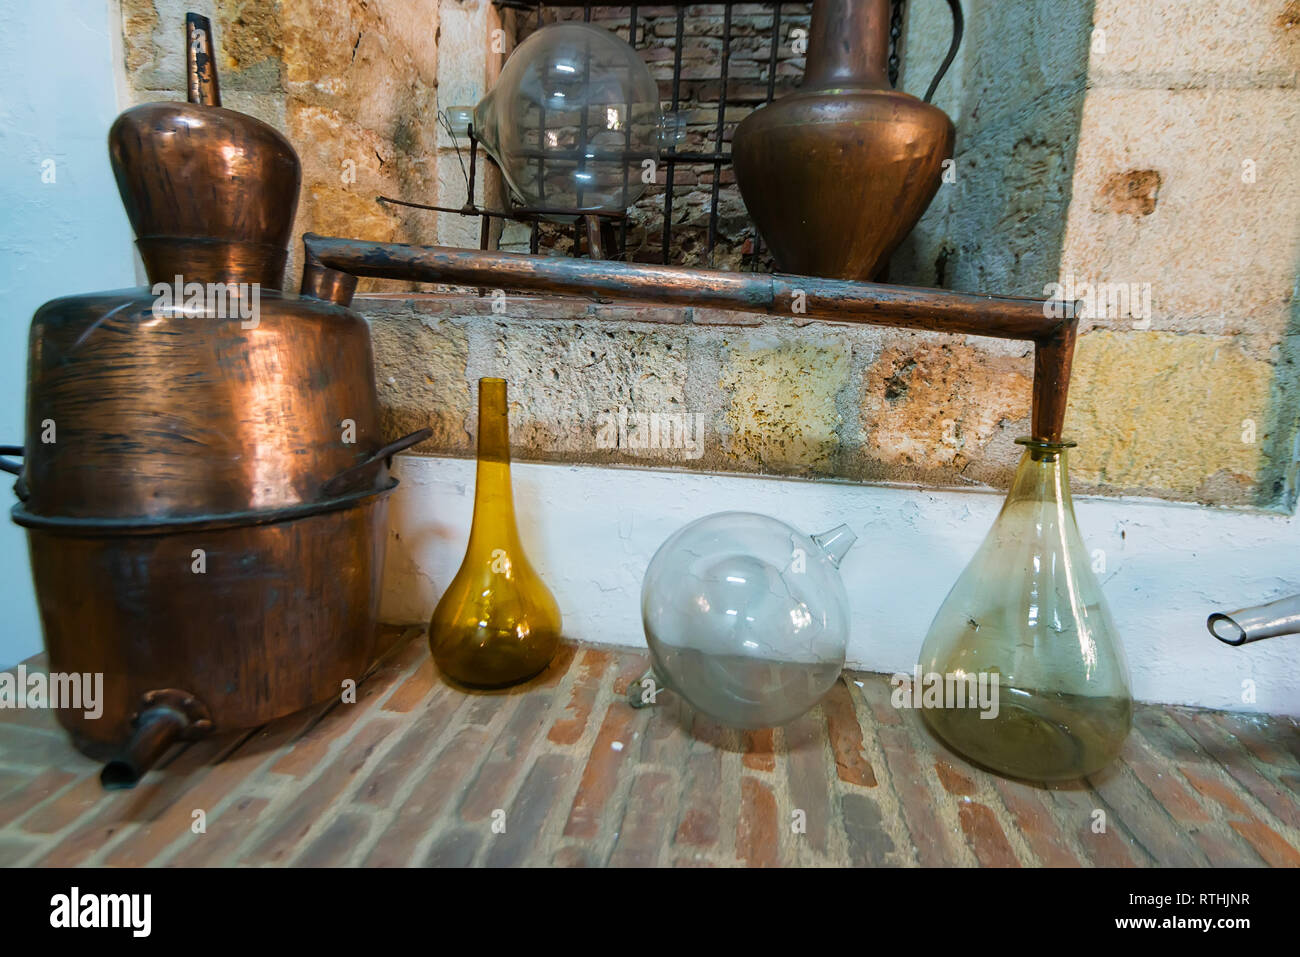 Traditional distilling machine exposed in museum in Dominican Republic - Stock Image